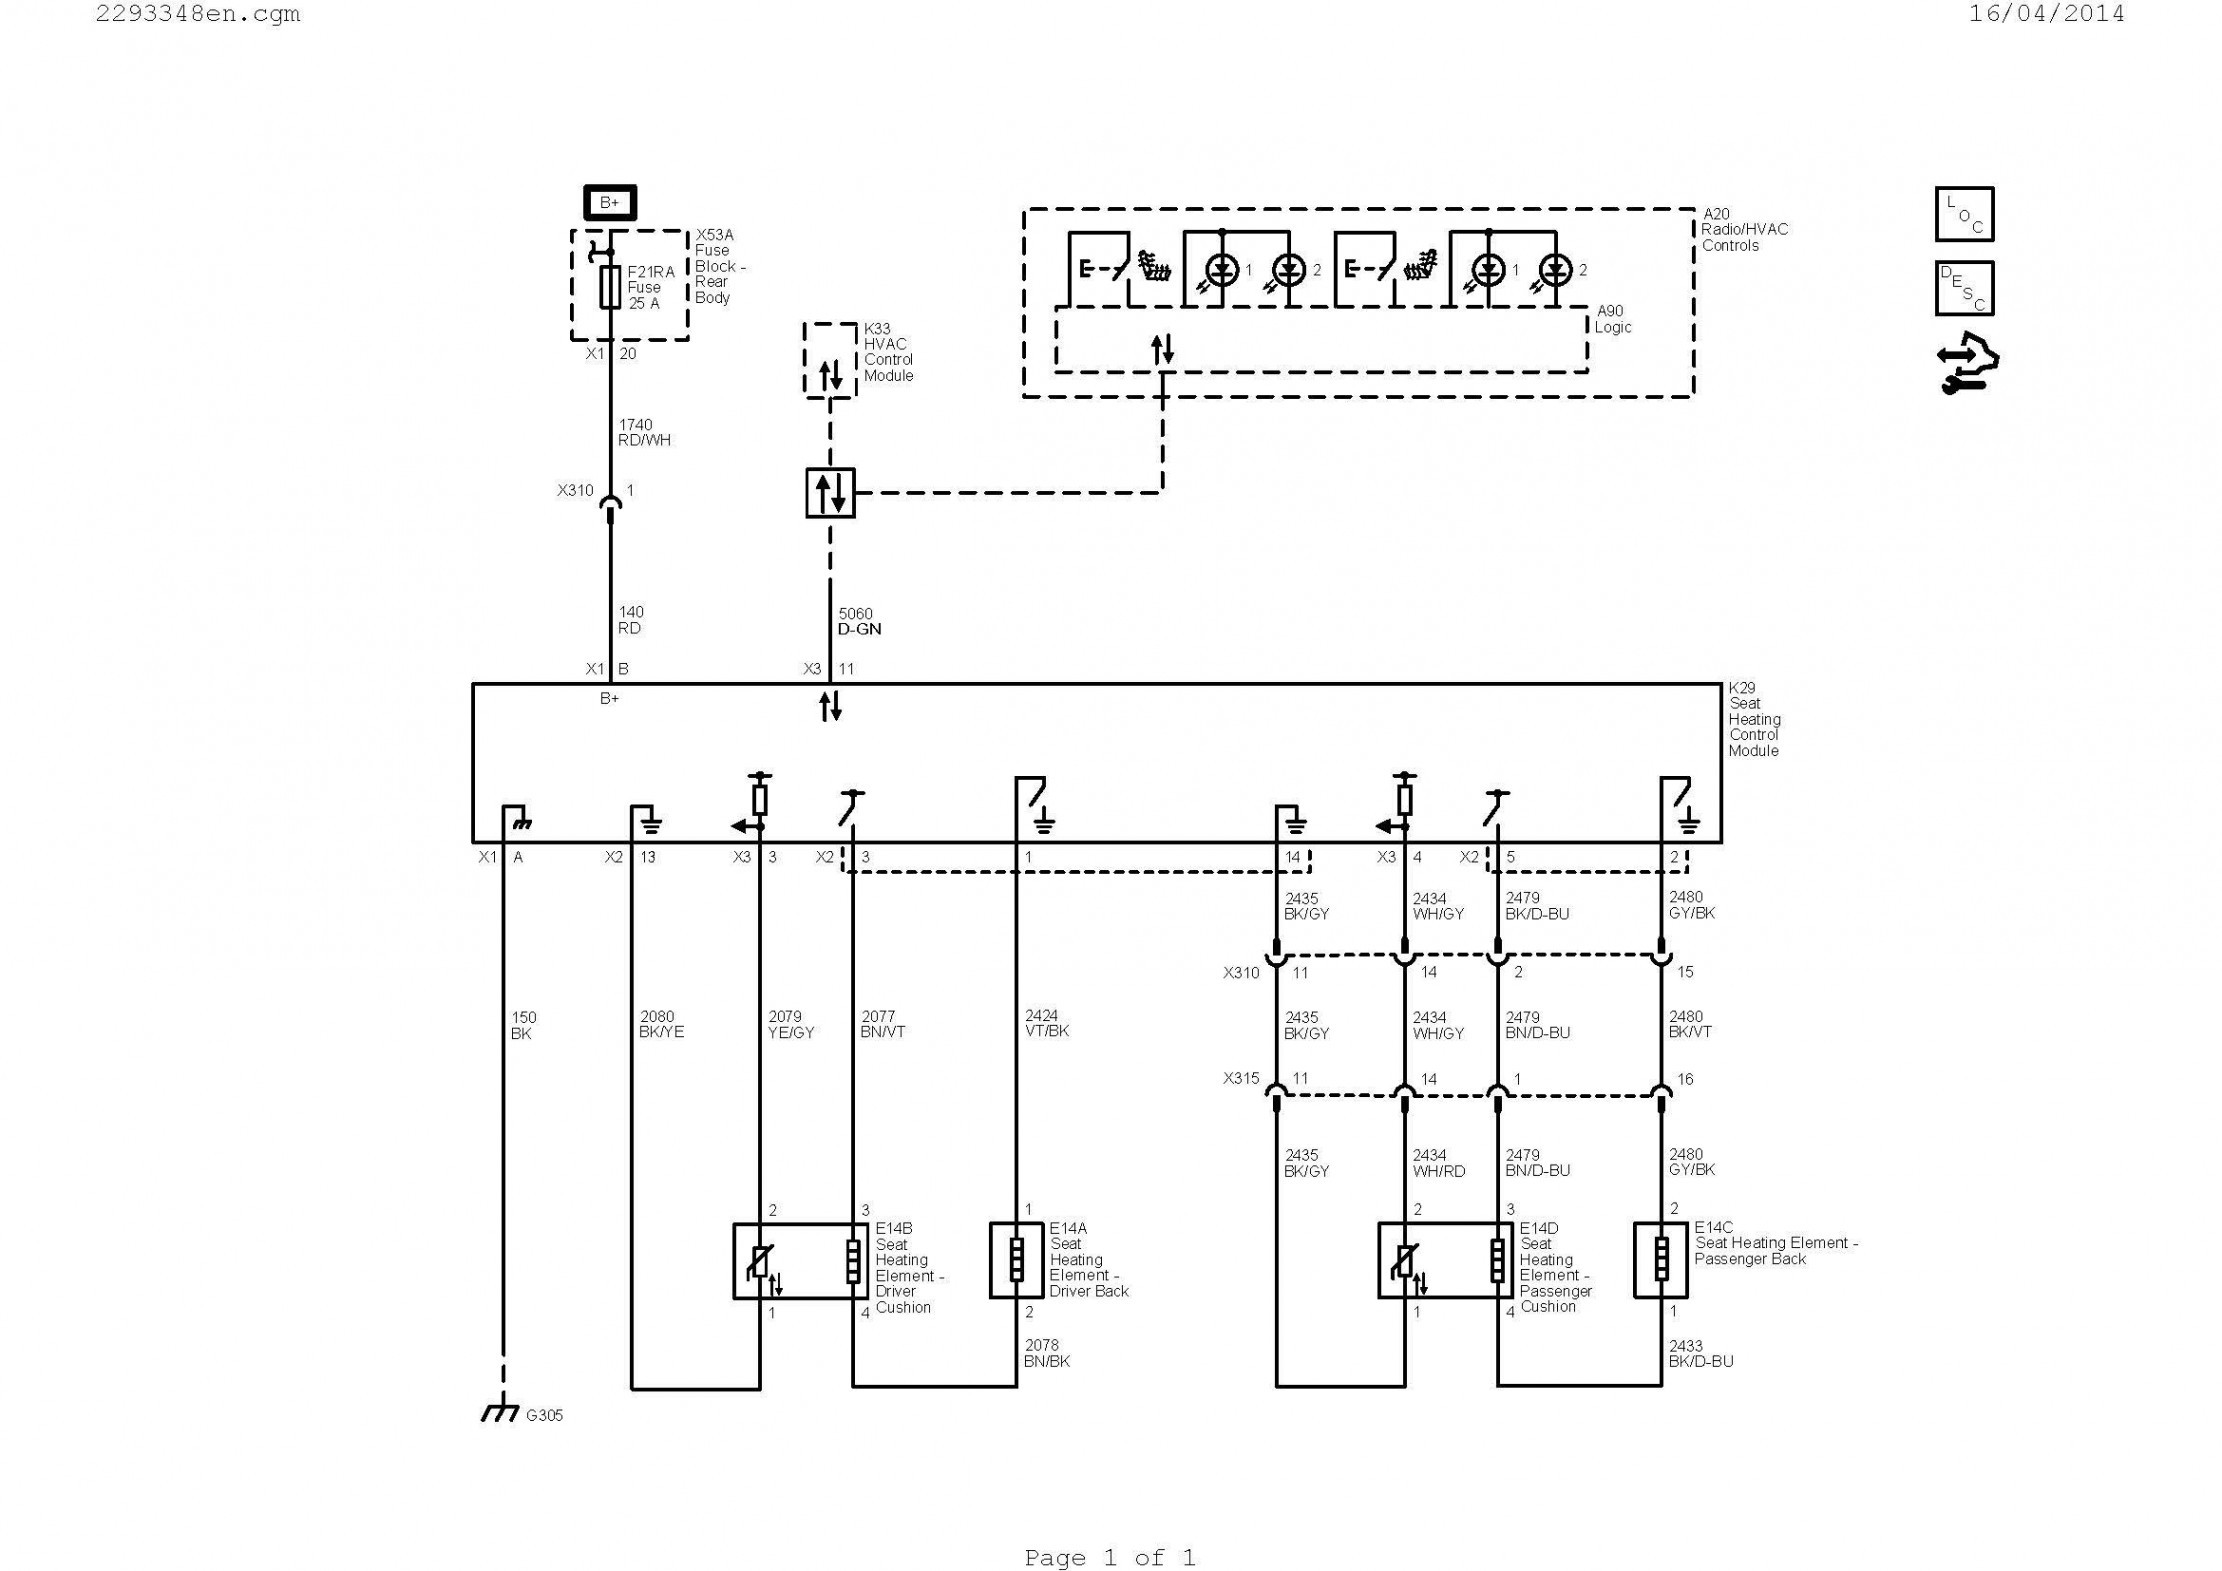 Suspension Parts Diagram Diagram the Body – Furnace Parts Diagram New Hvac Diagram Best Of Suspension Parts Diagram